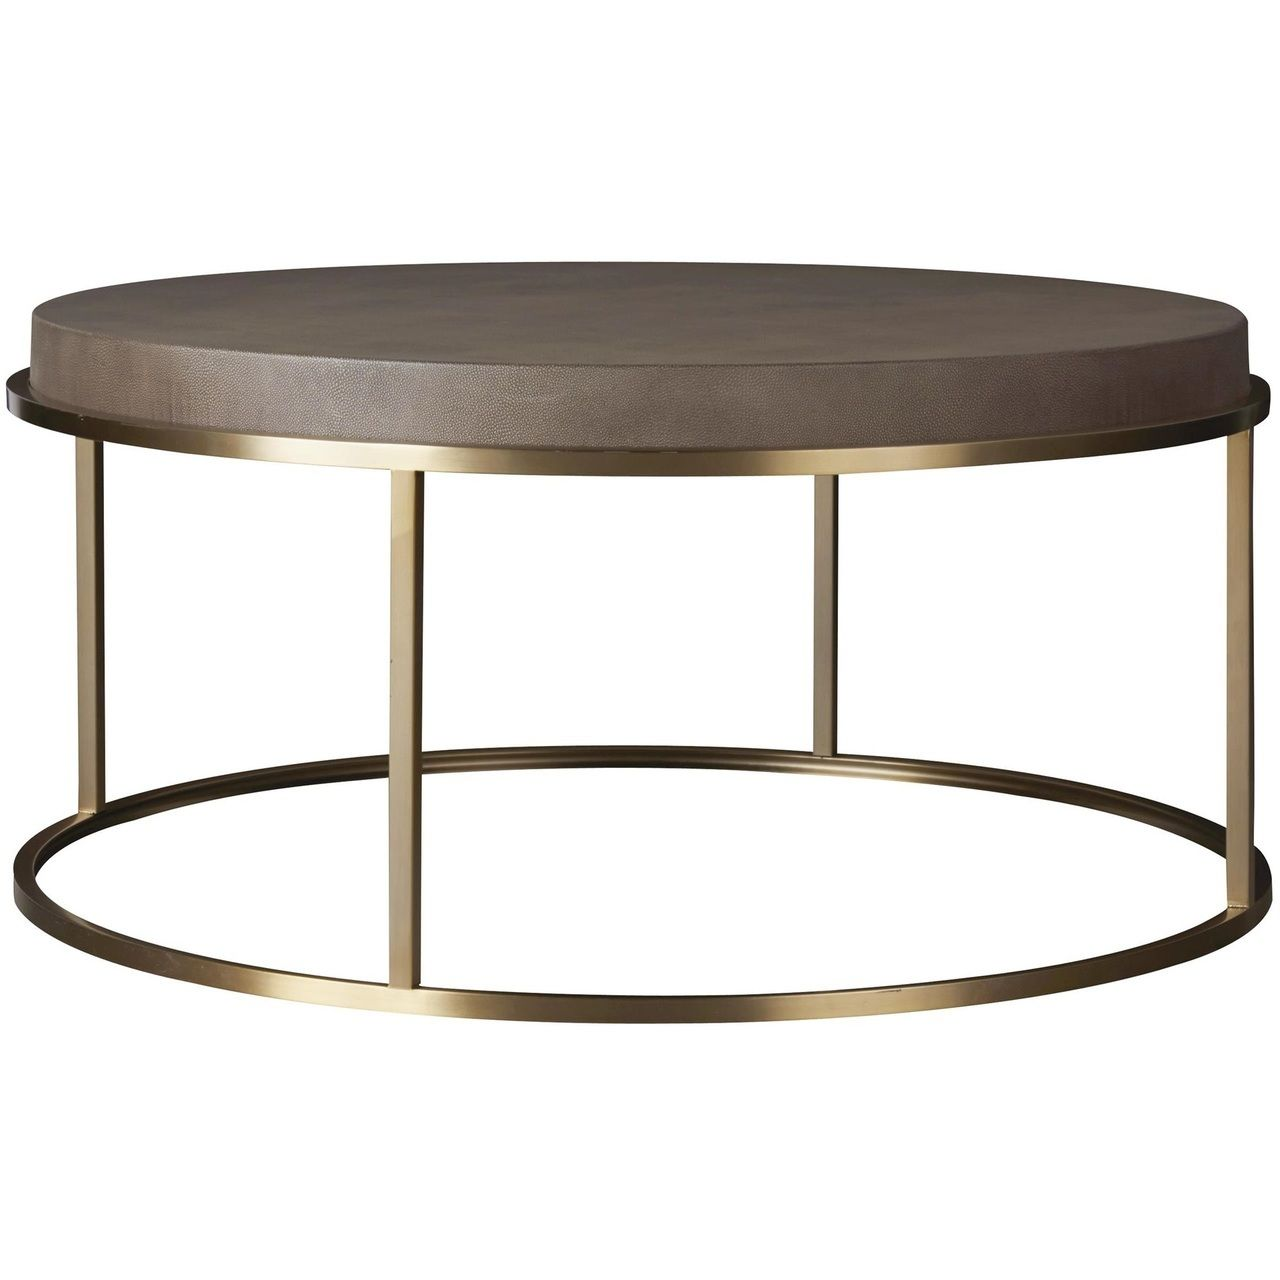 Portobello Modern Shagreen Brass Round Coffee Table 42 Brass